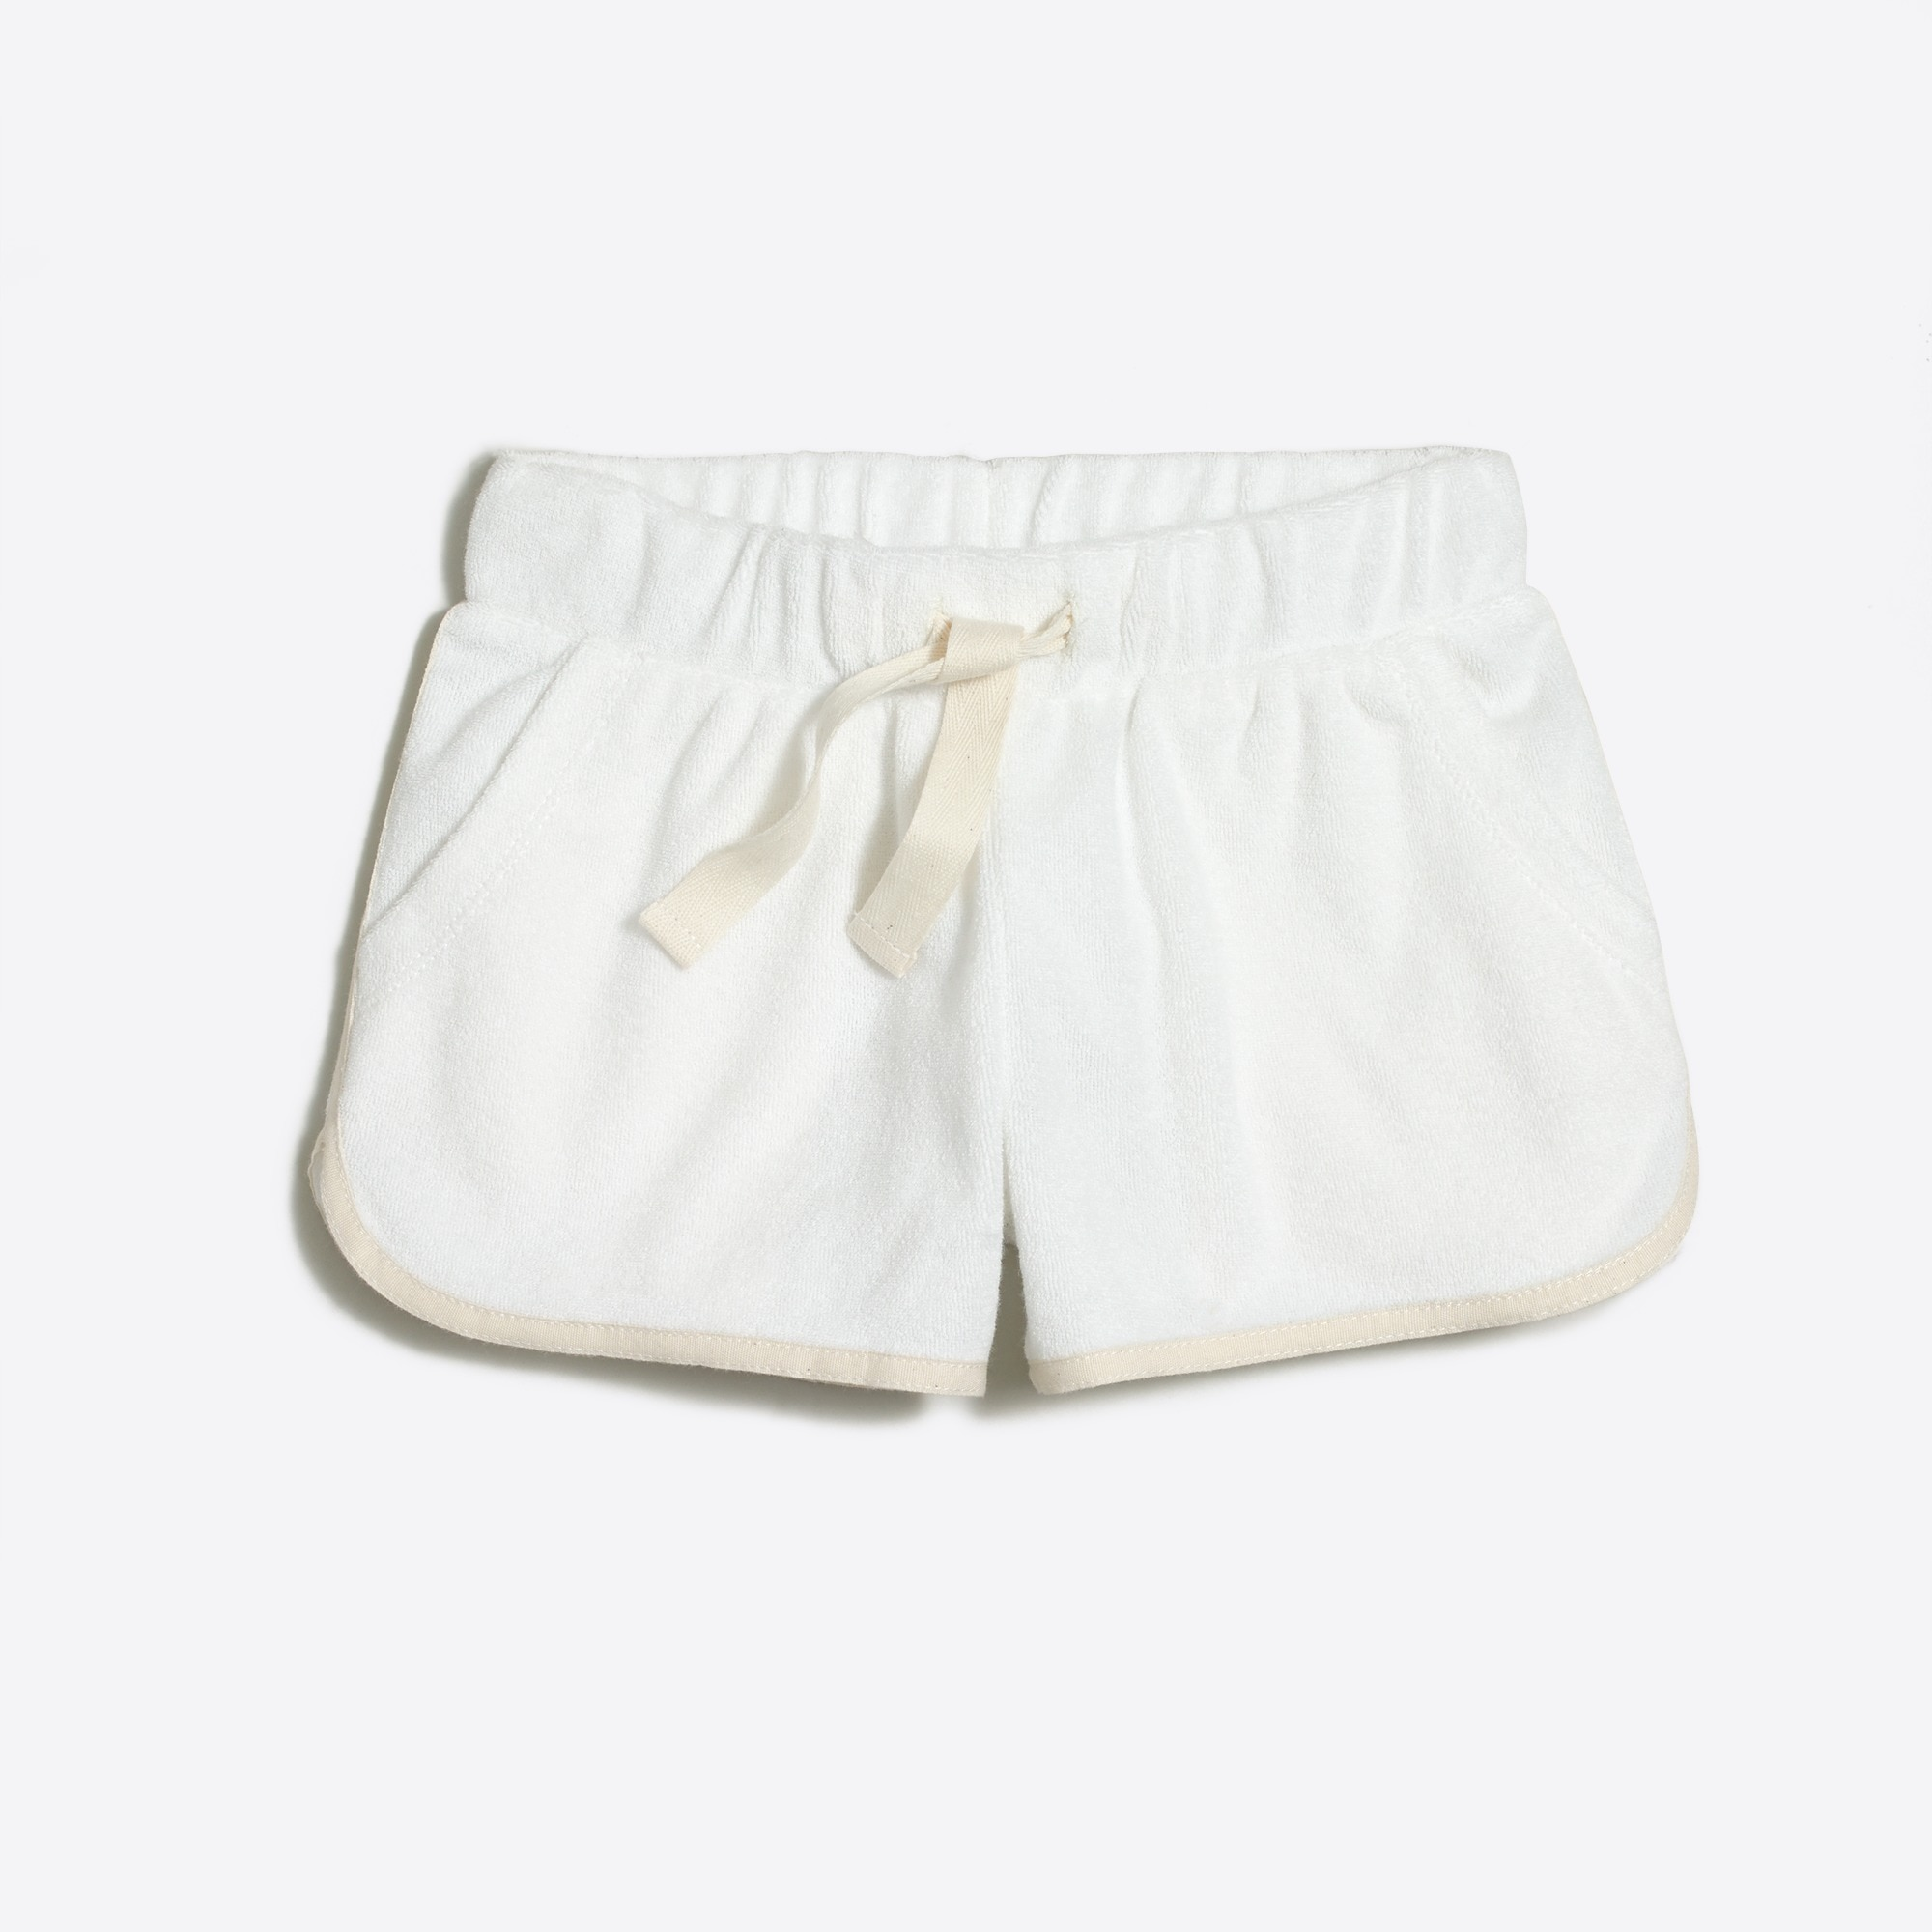 Image 1 for Girls' terry pull-on short